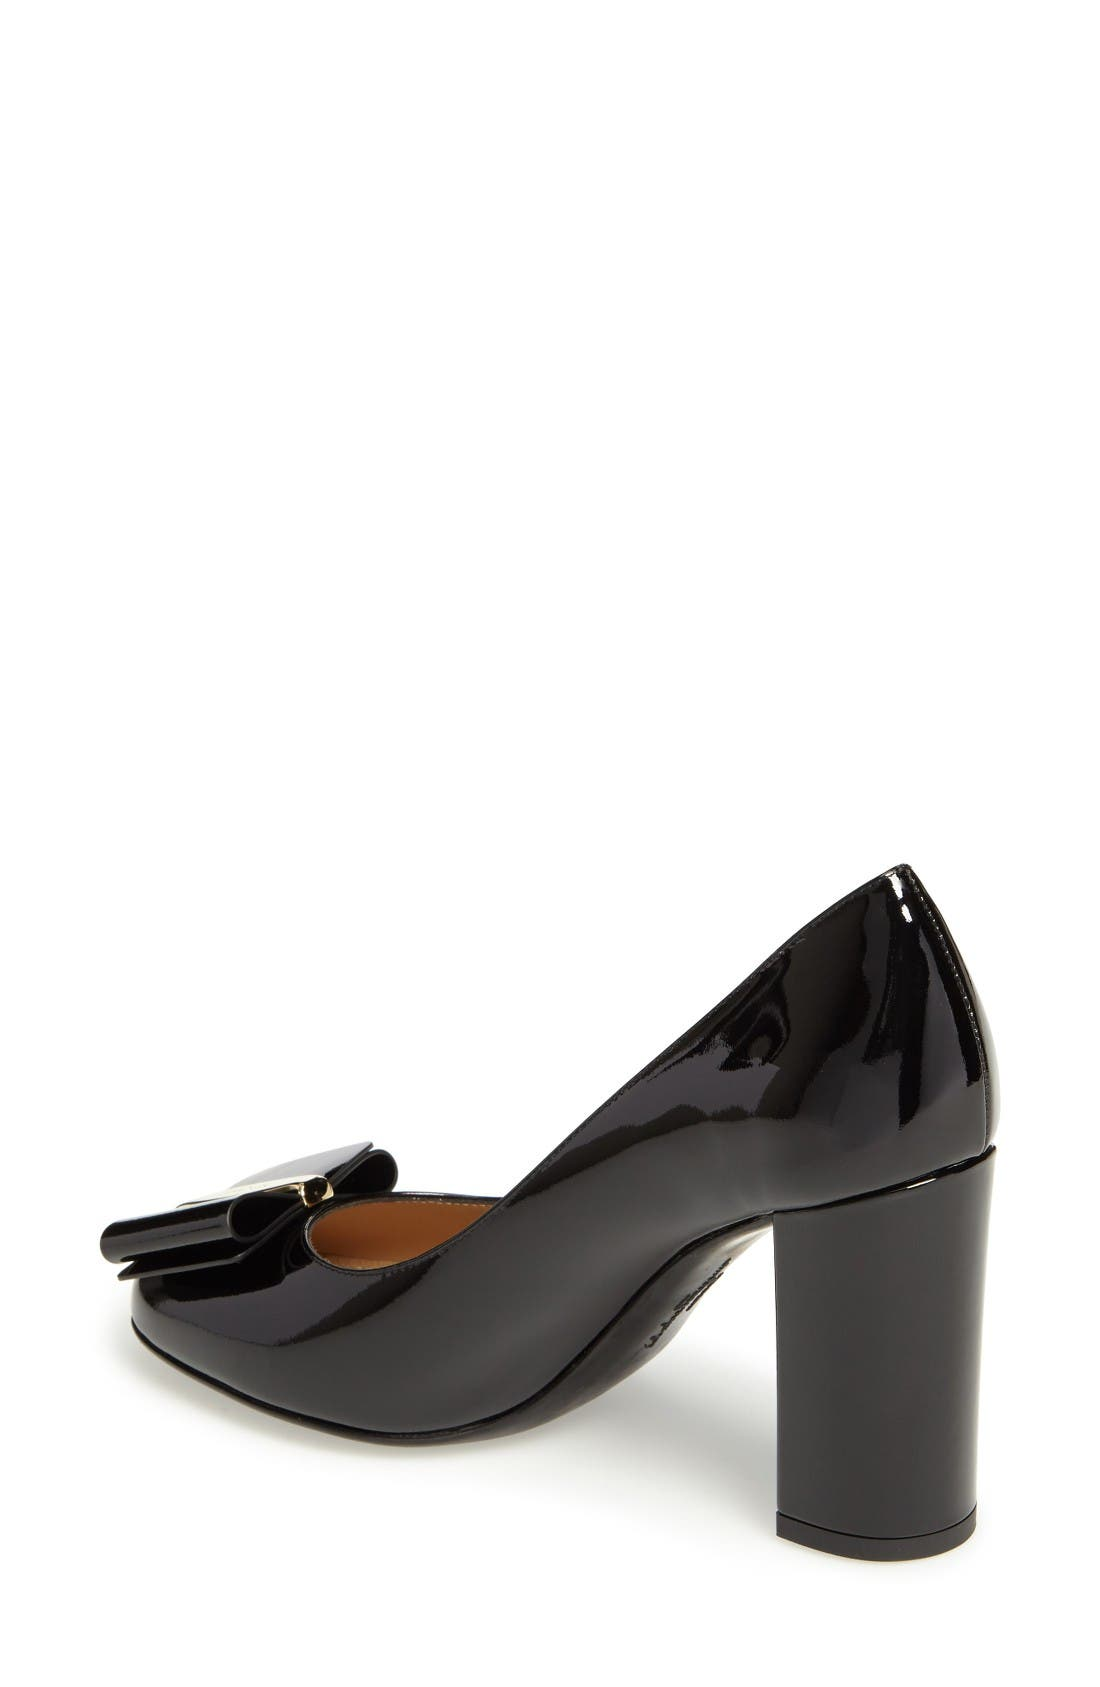 Alternate Image 2  - Salvatore Ferragamo Block Heel Bow Pump (Women)